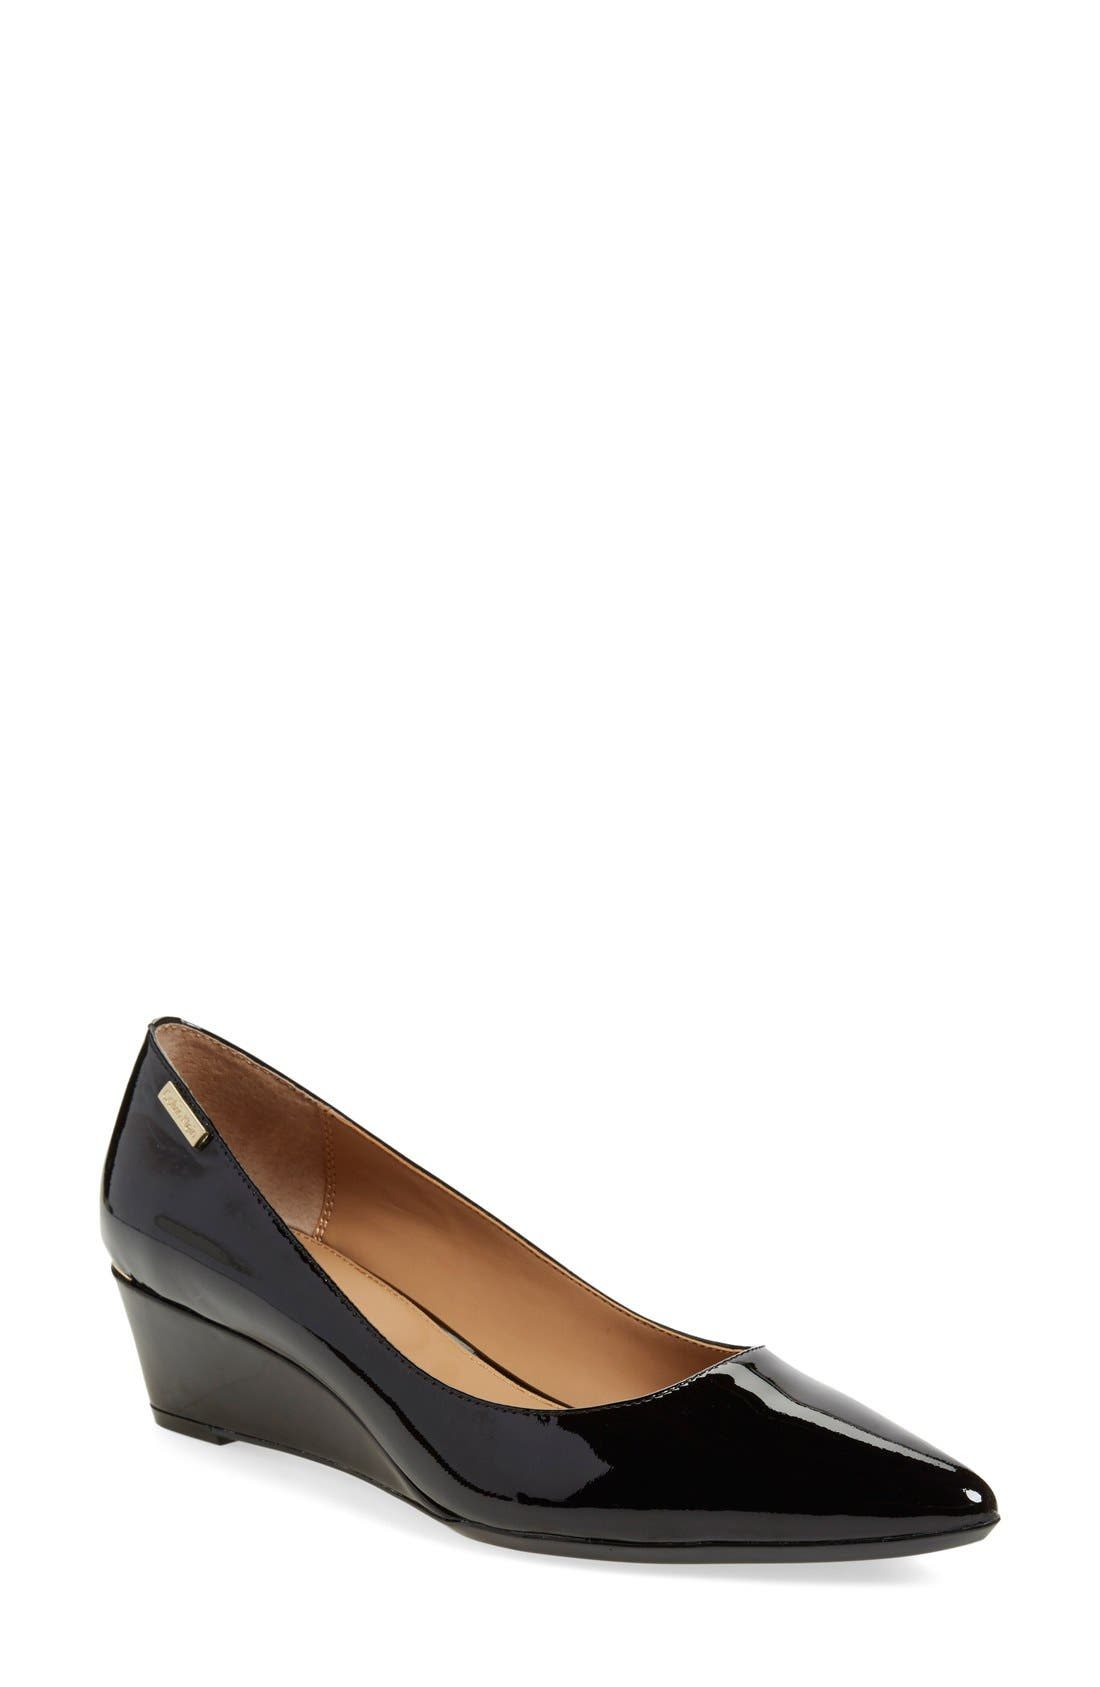 CALVIN KLEIN,                             'Germina' Pointy Toe Wedge,                             Main thumbnail 1, color,                             BLACK PATENT LEATHER